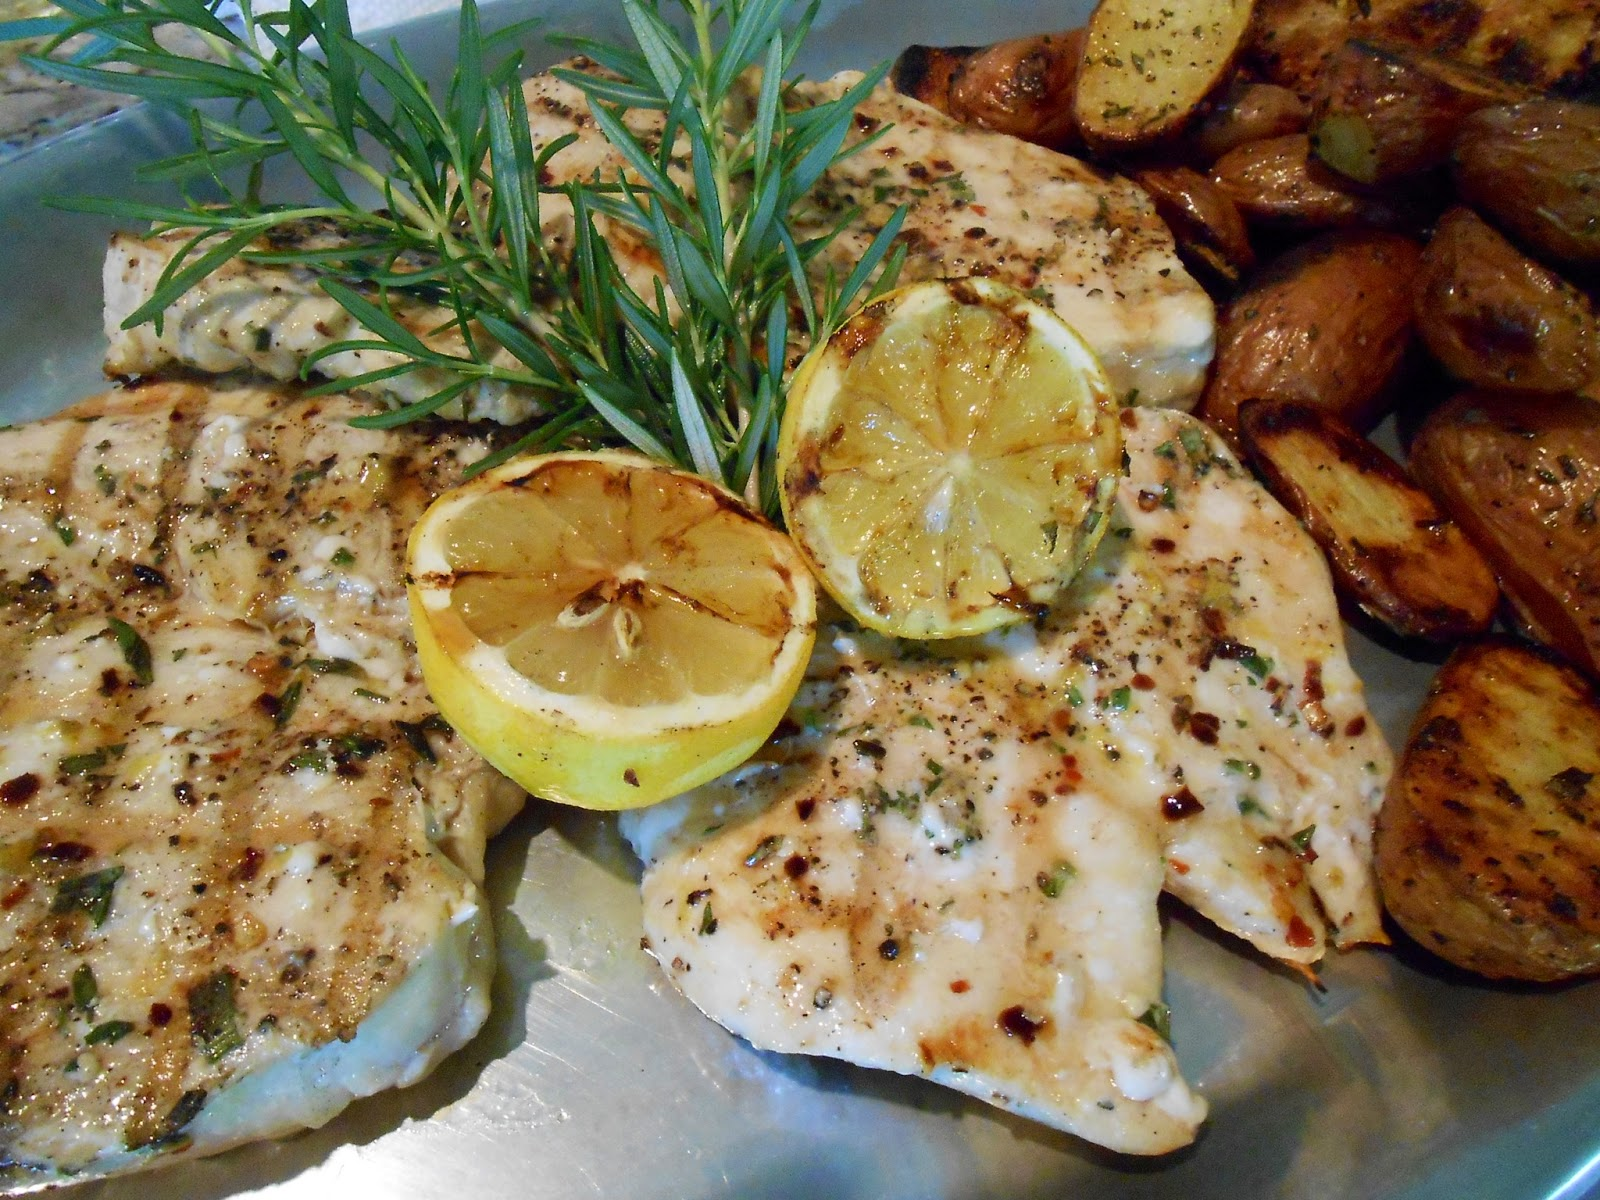 Kitty's Kozy Kitchen: Lemon and Rosemary Grilled Chicken